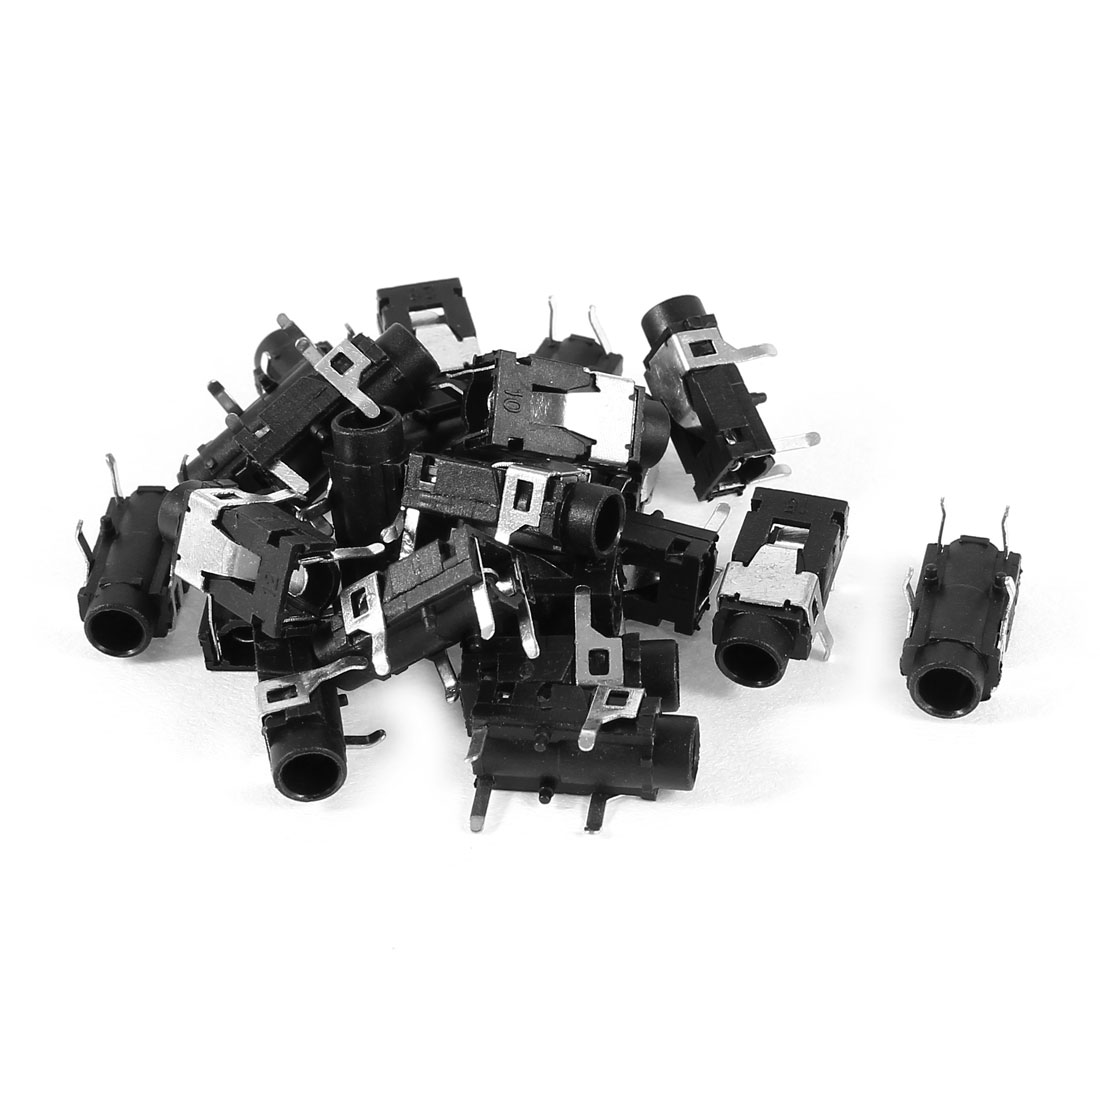 Earphone 4 Pin 3.5mm SMD PCB Mount Female Stereo Socket Connector 20pcs